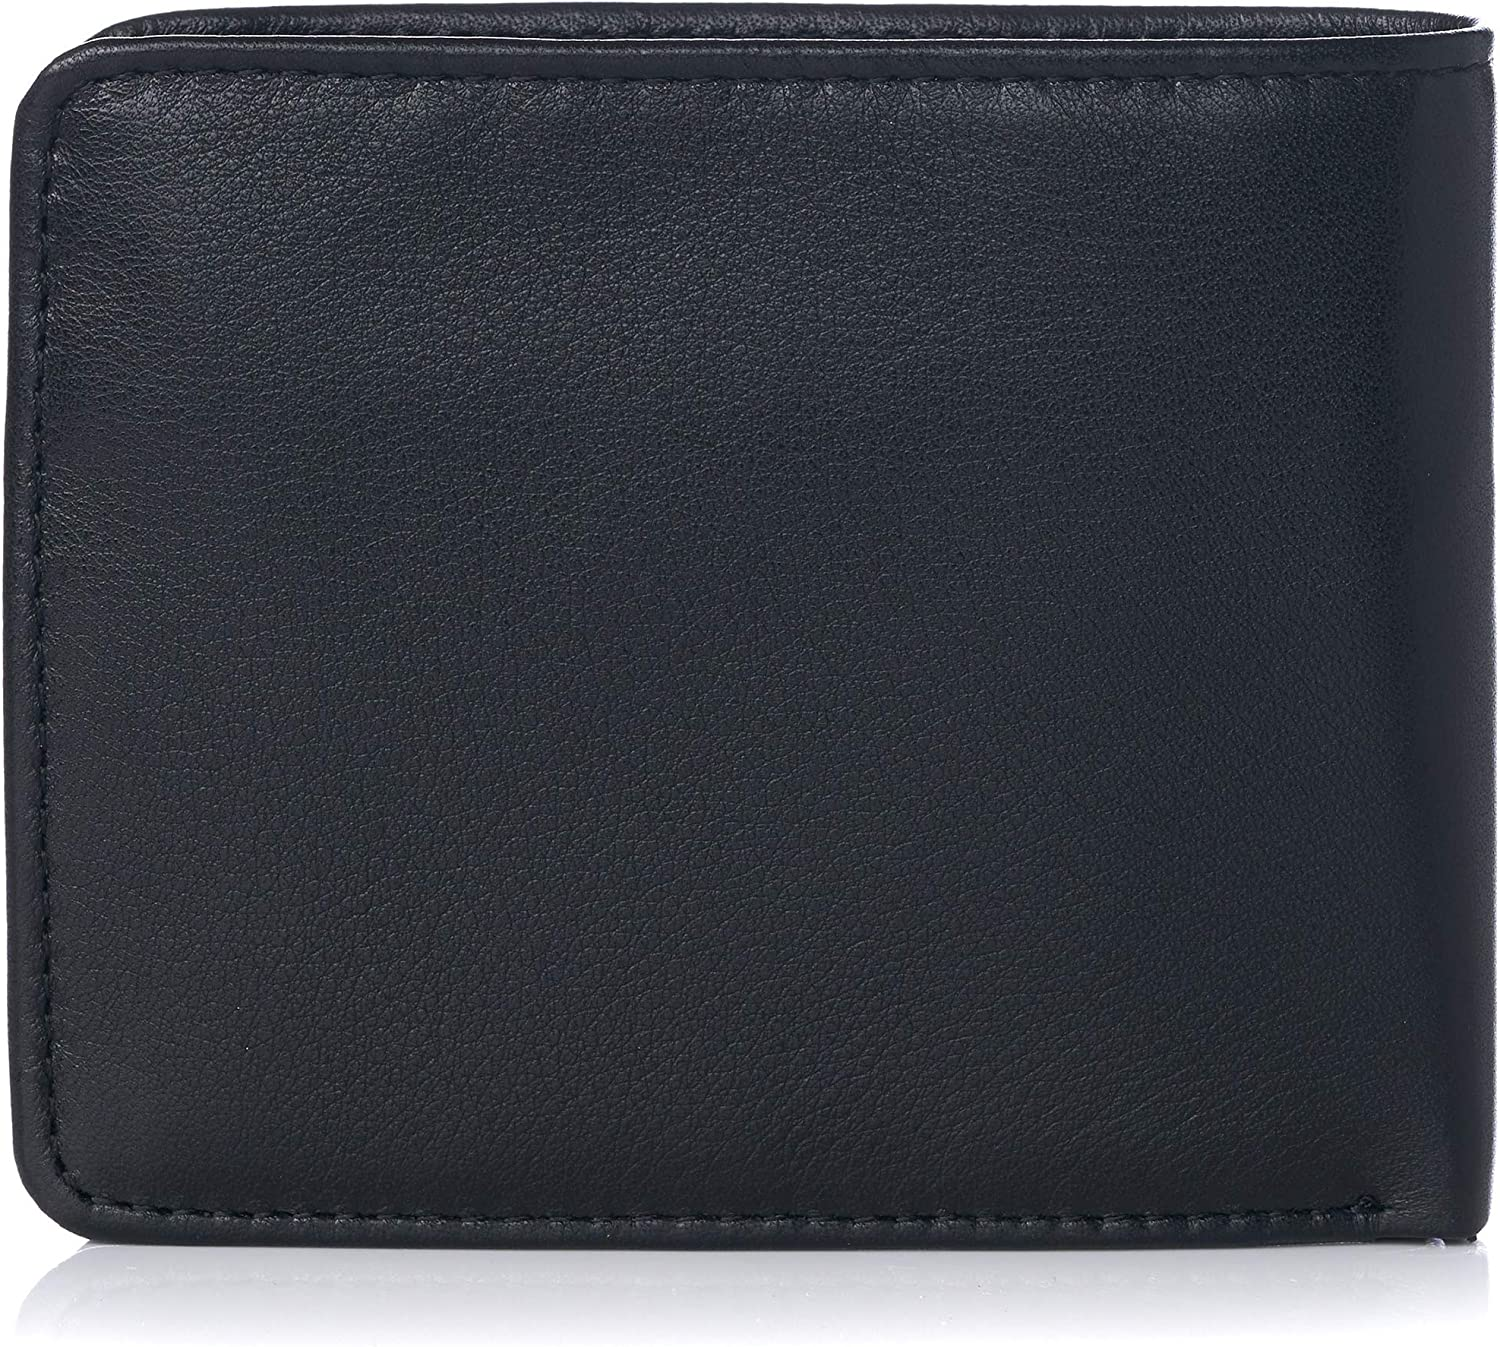 Alpine Swiss RFID Protected Men's Max Coin Pocket Bifold Wallet with Divided Bill Section Camden Collection Comes in a Gift Box